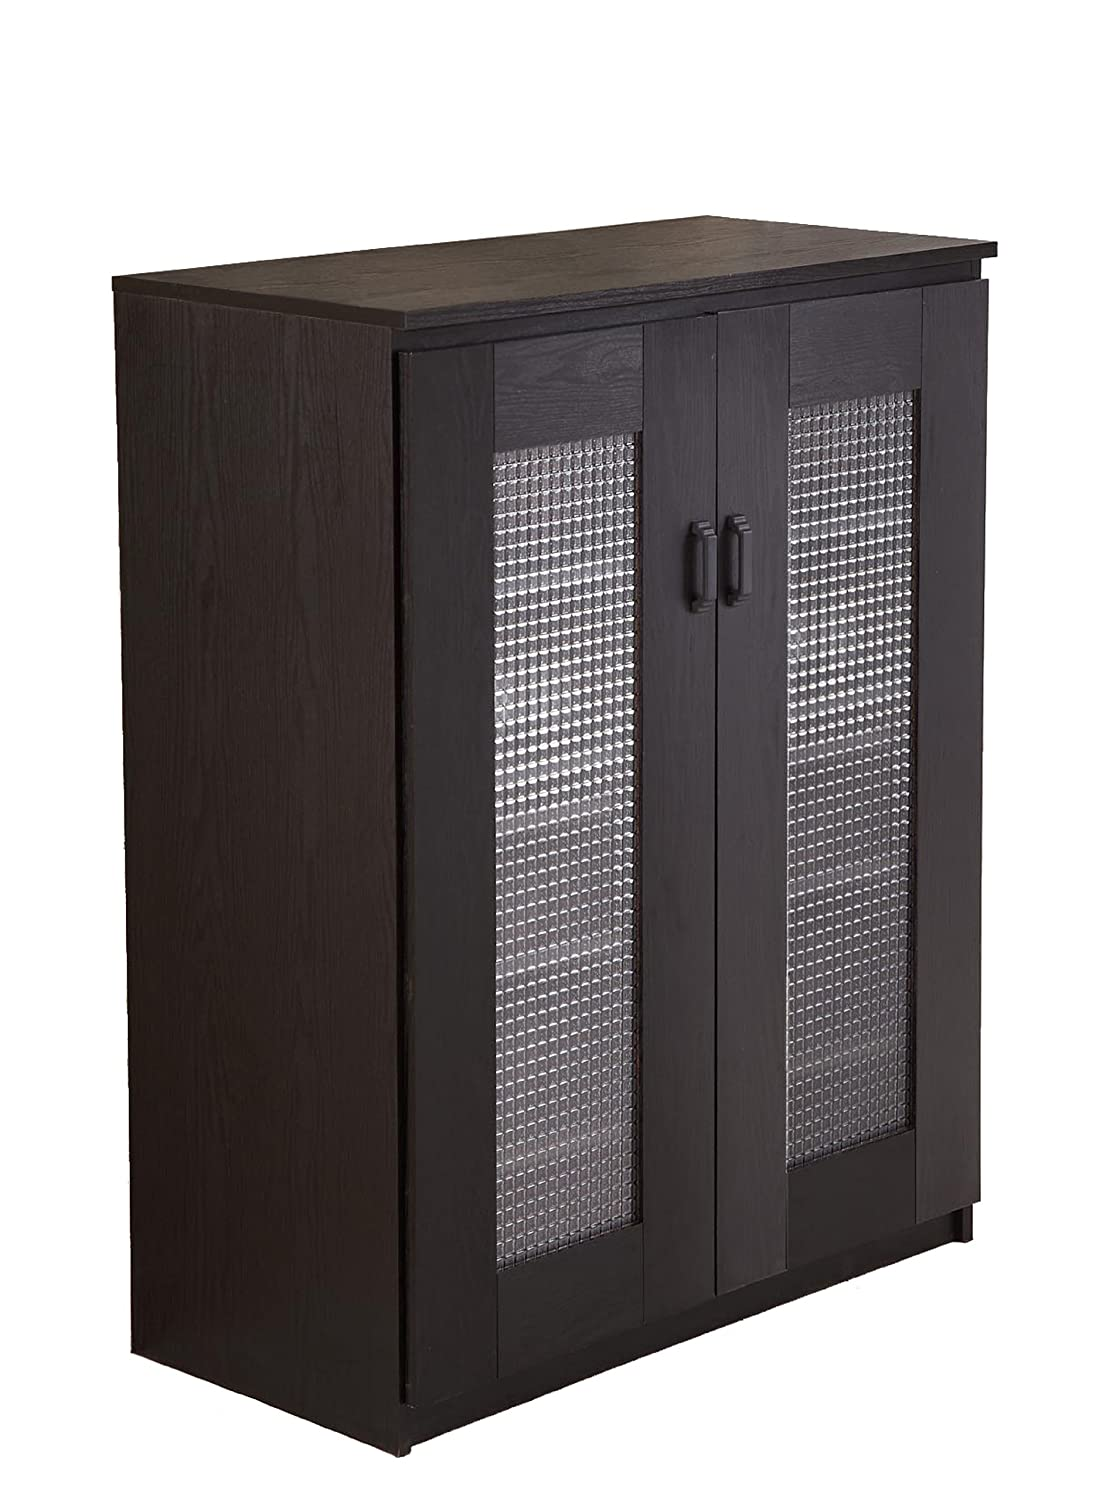 Enitial Lab Brisk 5-Shelf Shoe Cabinet, Black $186.99